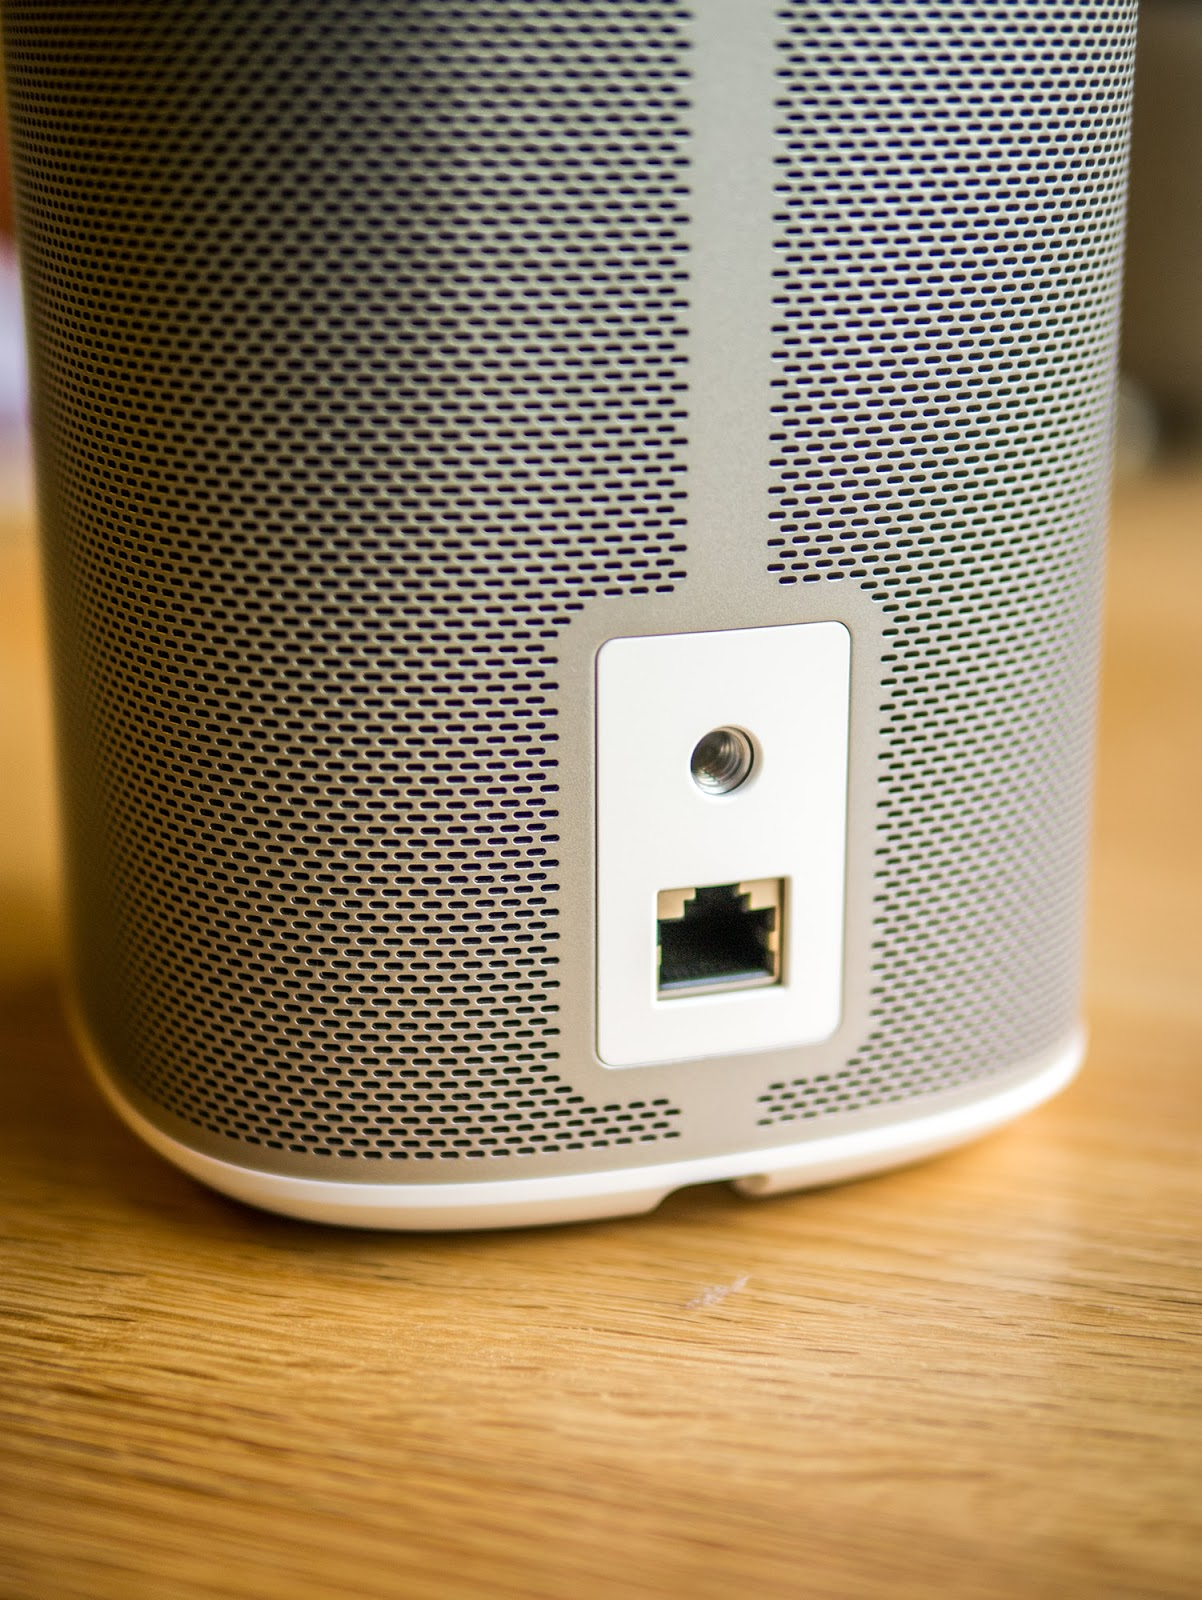 Tivoli Audio Vs Sonos Oluv S Gadgets Review Sonos Play 1 Smallest Yet Best